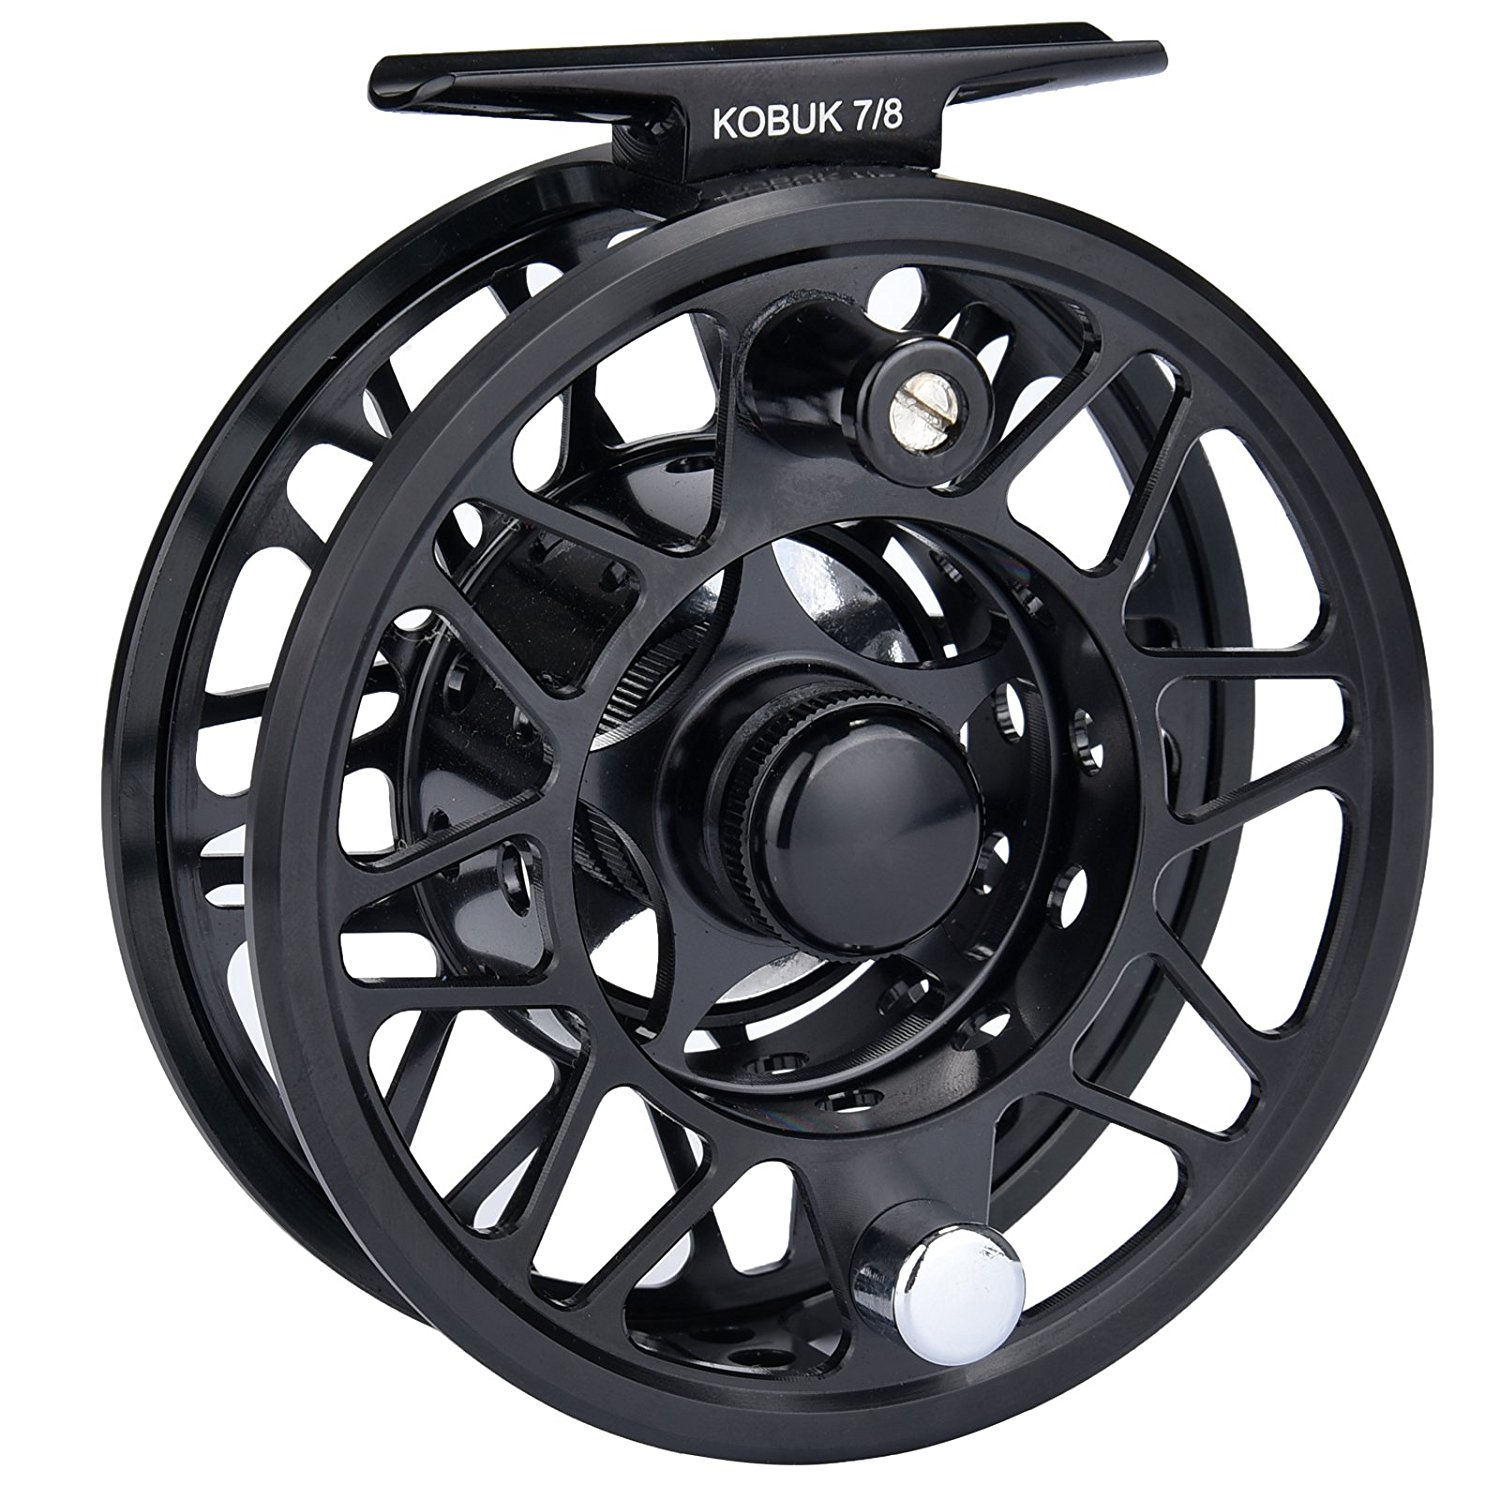 KastKing Kobuk Fly Fishing Reel